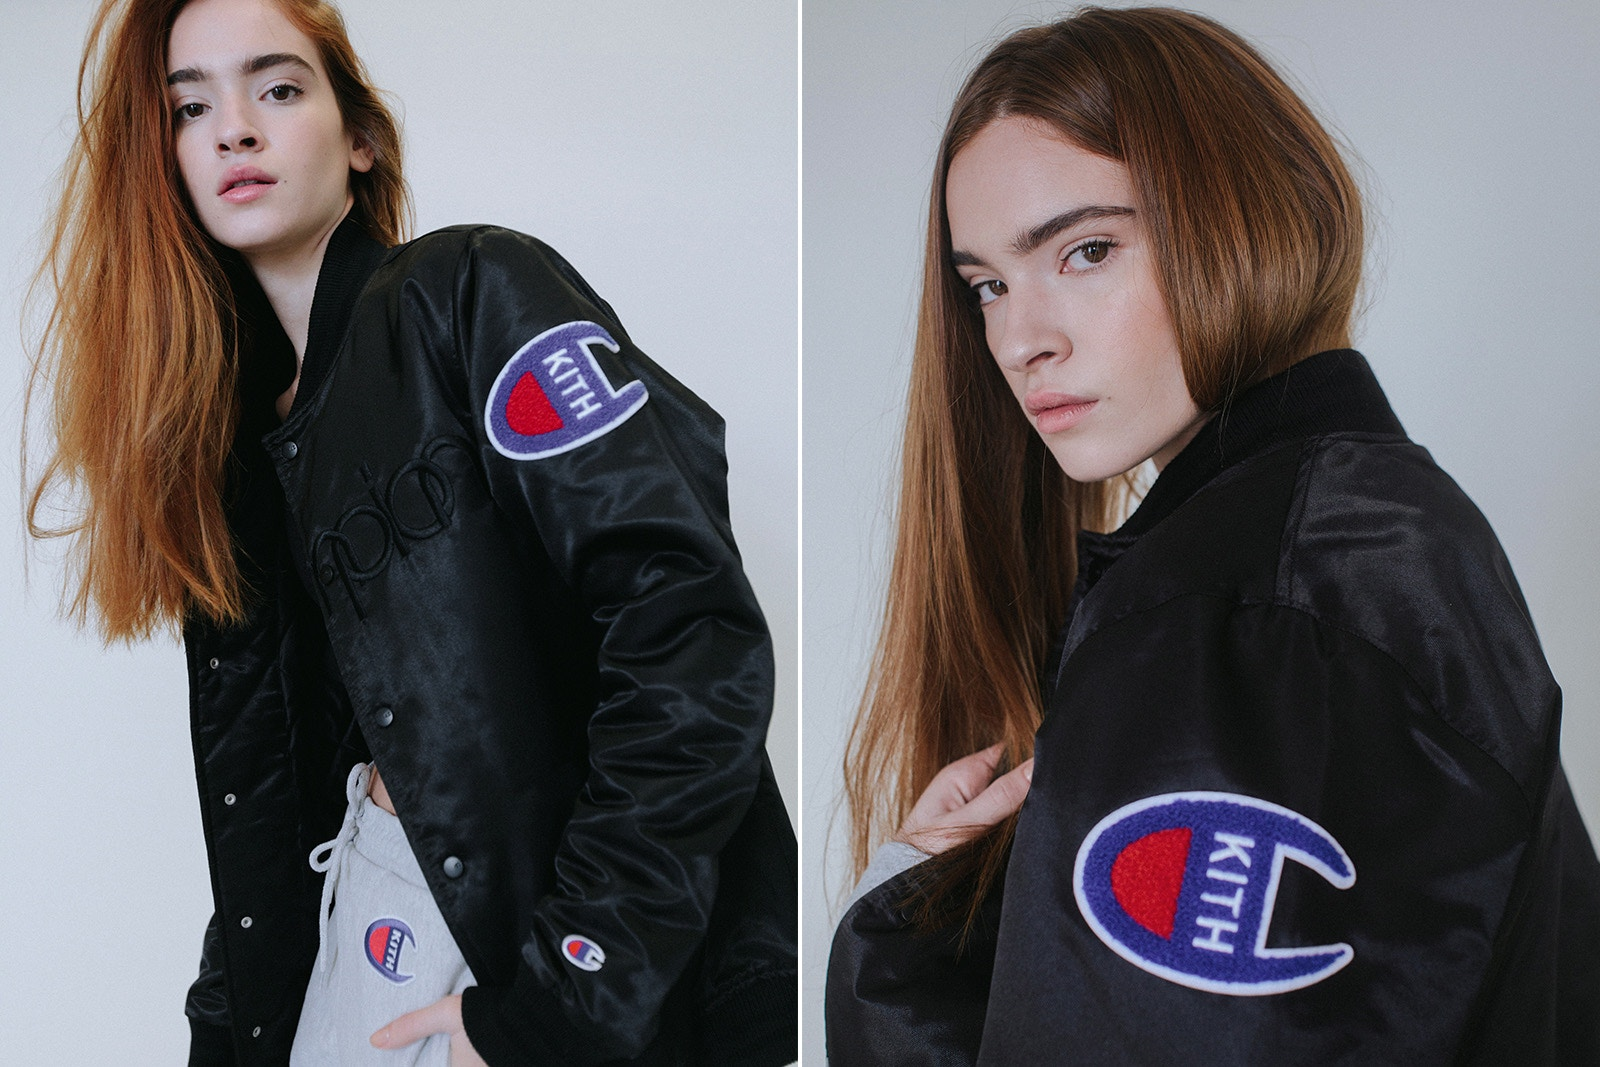 KITH rielabora il logo di Champion per una nuova capsule collection | Collater.al 9